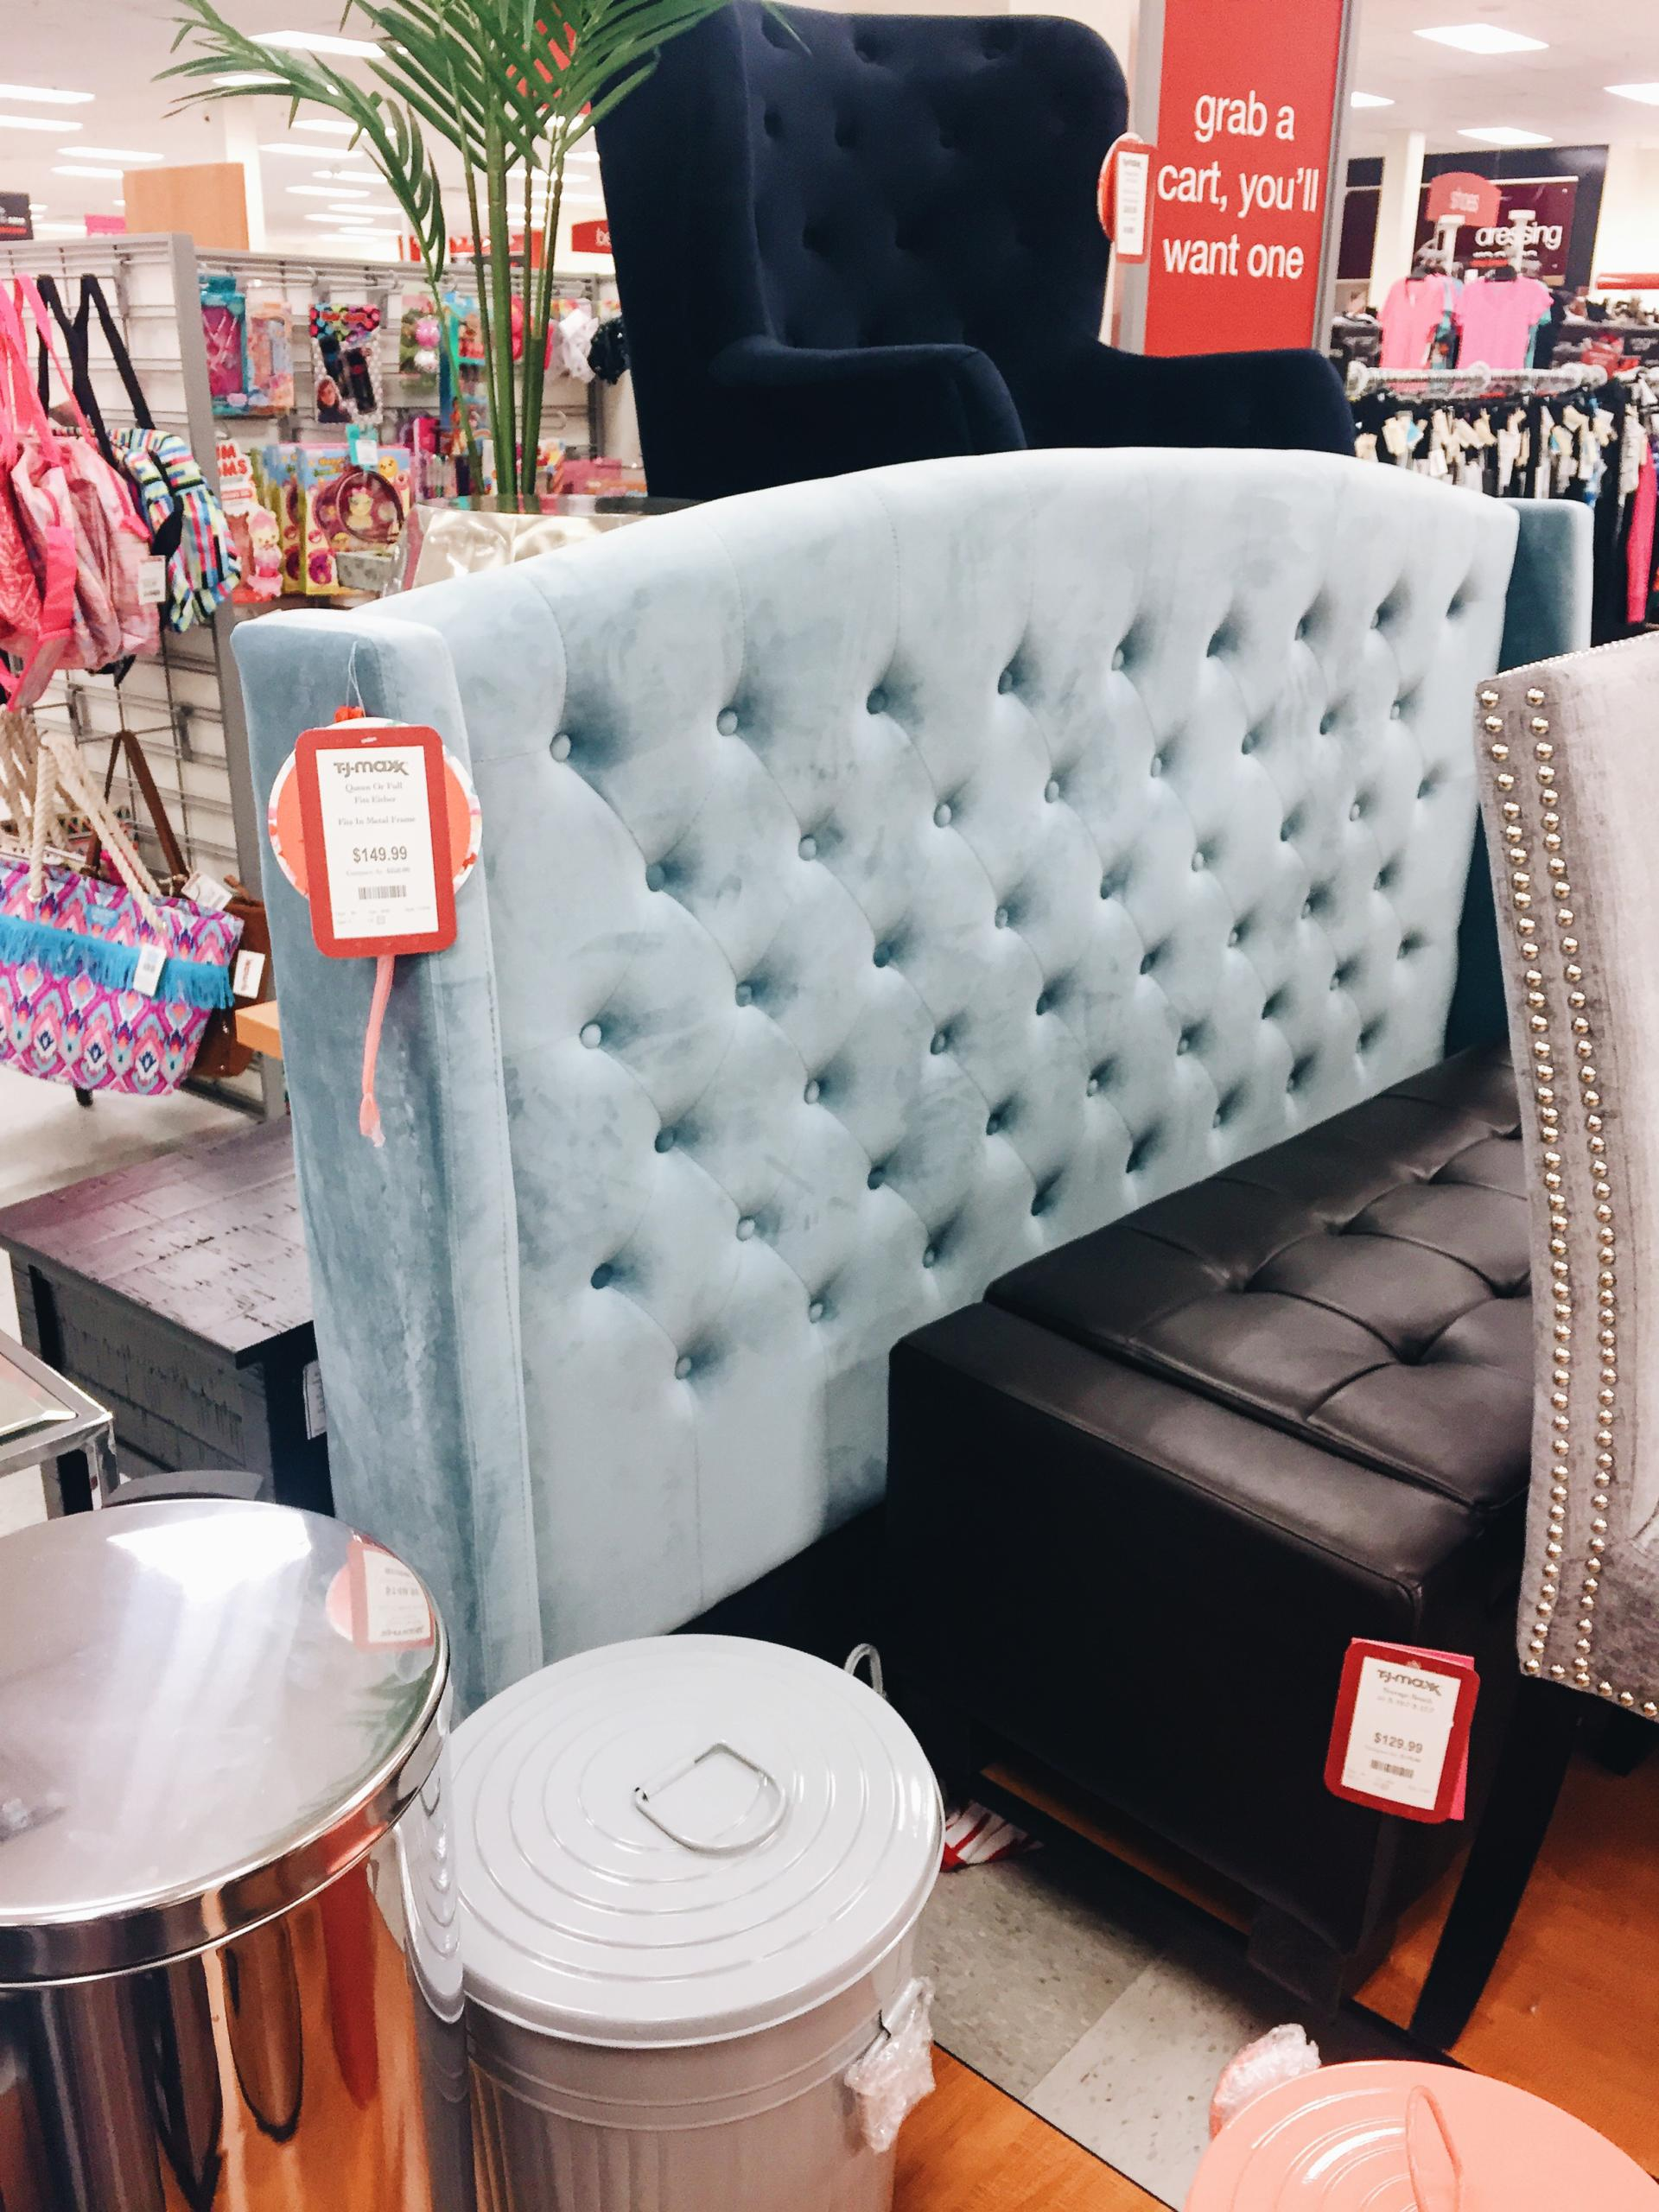 How To Get The Most Out Of TJ MAXX ...